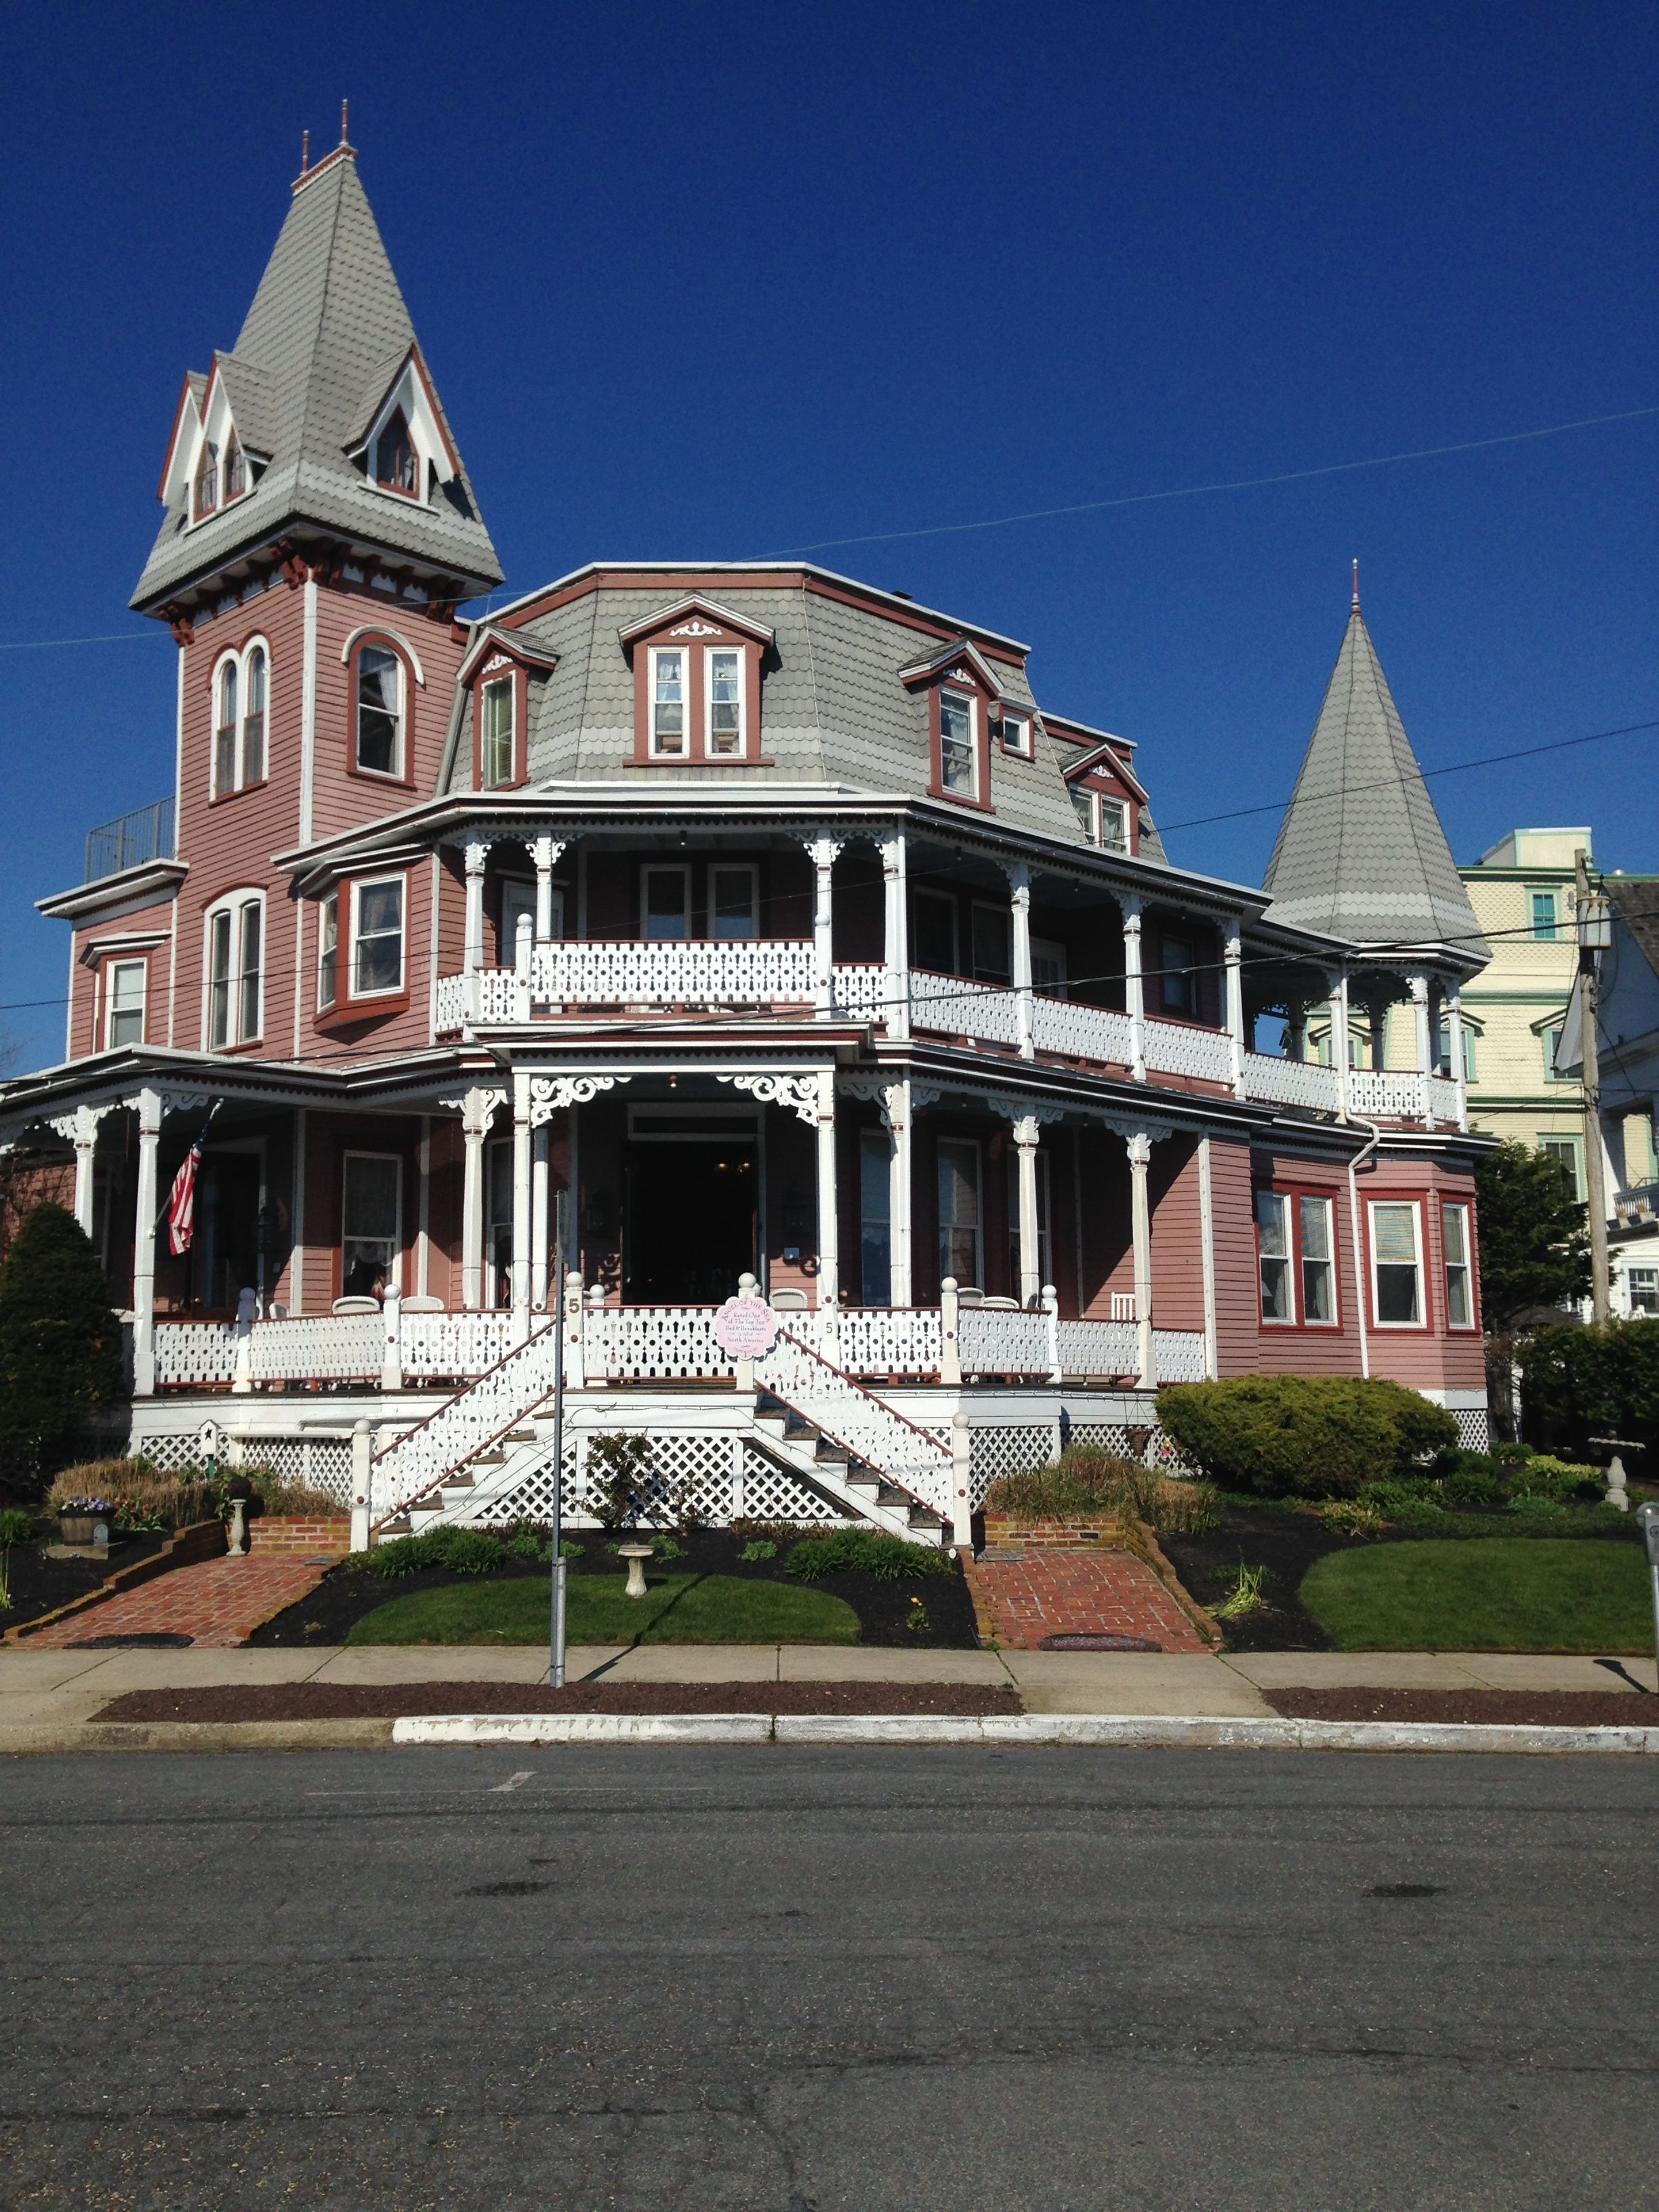 Angel of the Sea, bed and breakfast. Cape May New Jersey